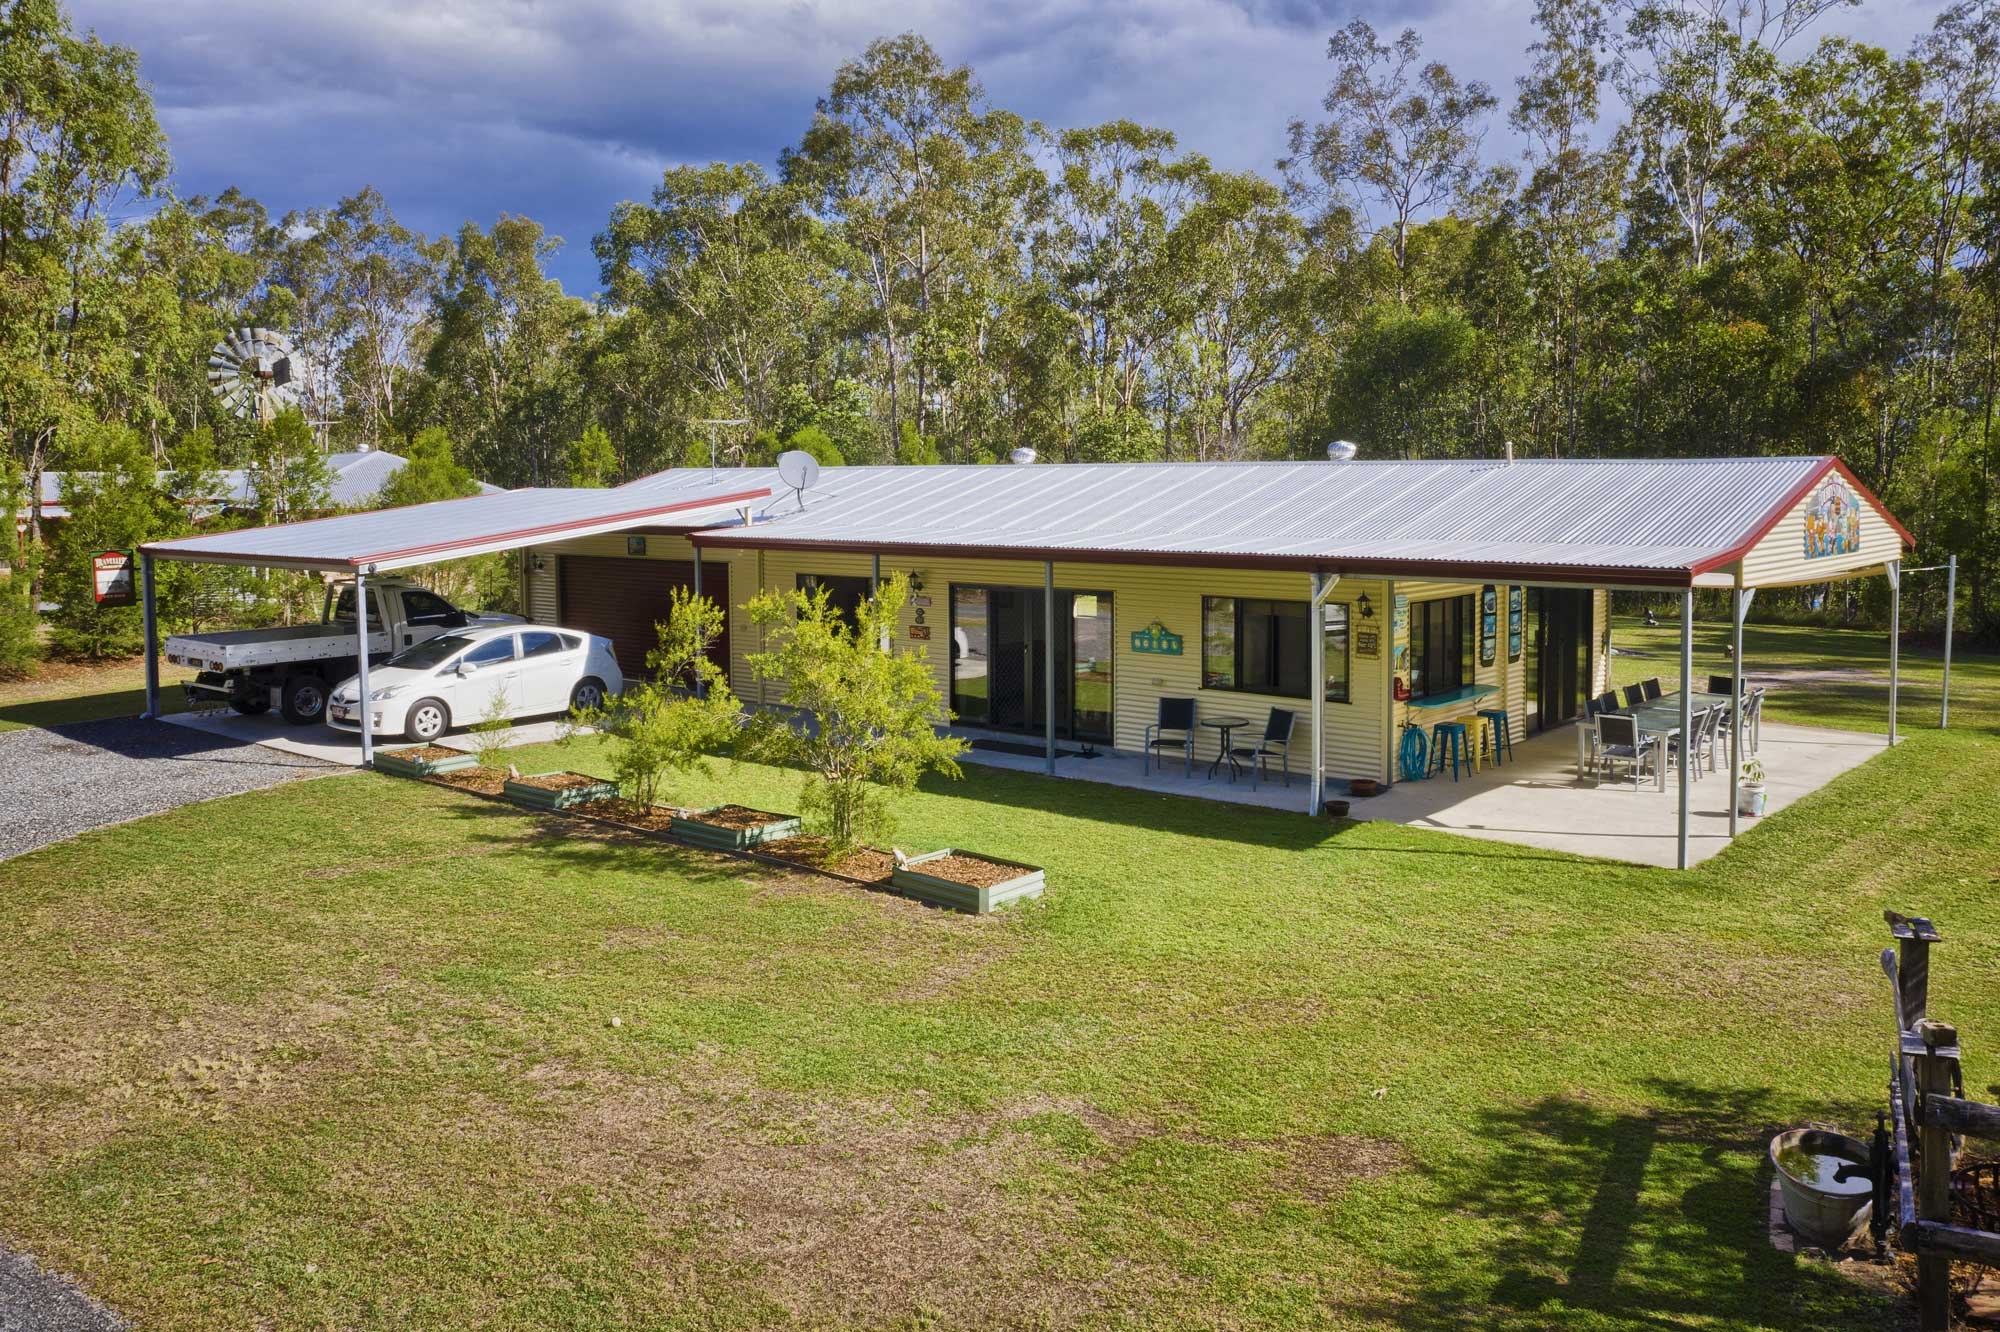 Acreage Photography Brisbane & Surrounds - the drone at only 3 metres above the ground